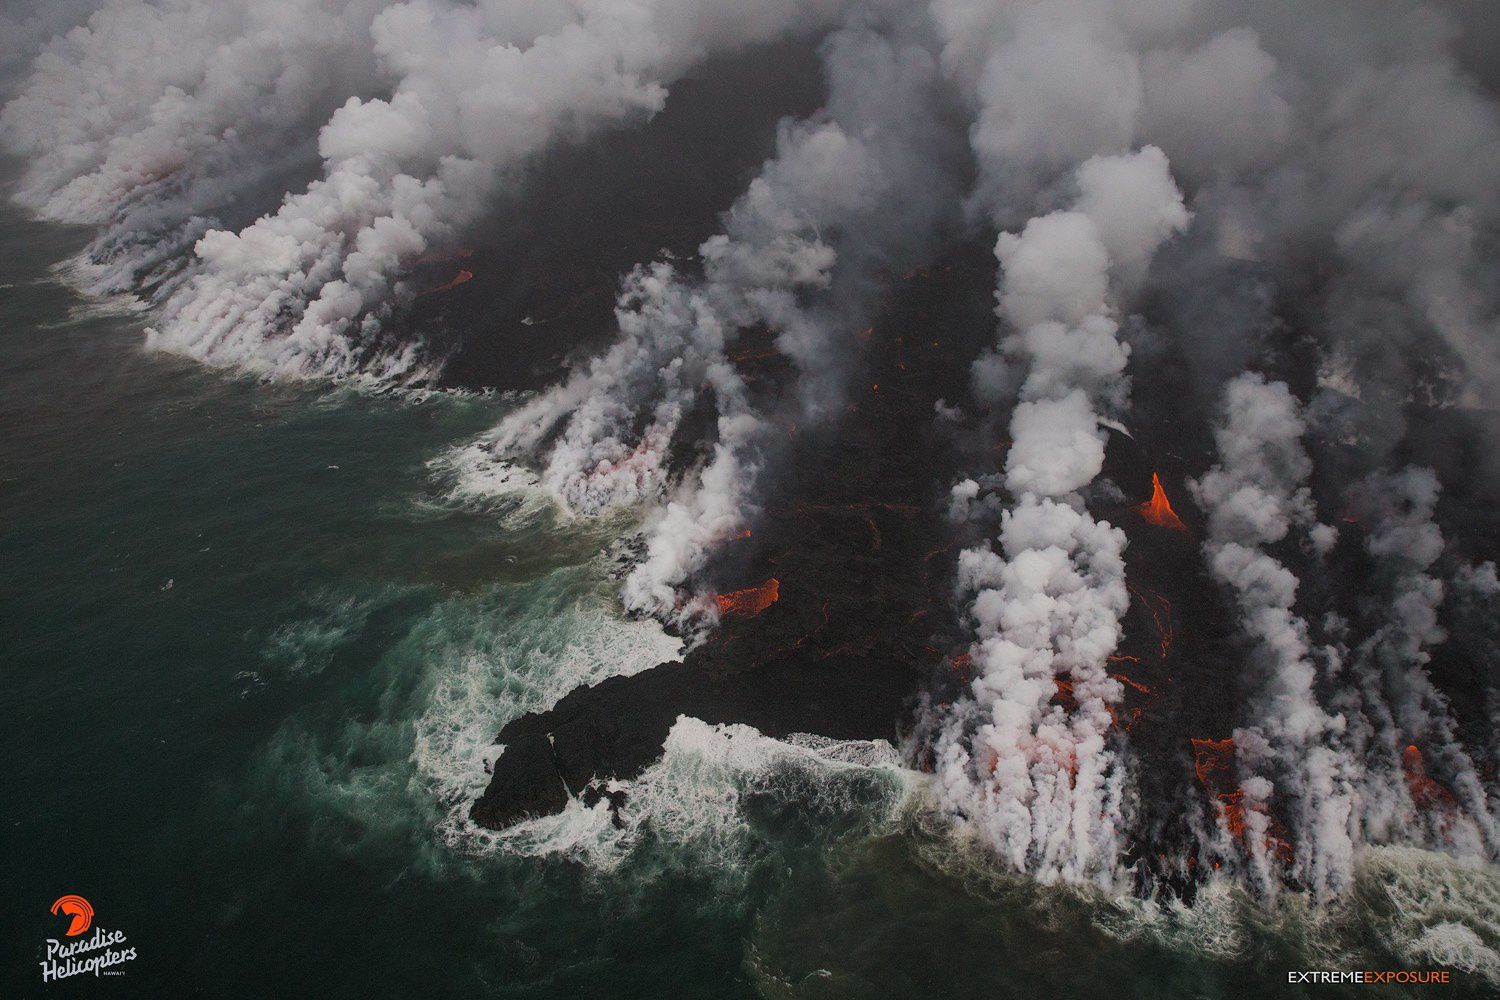 Kilauea East rift zone - 27.06.2018 - shoreline changes where various structures were covered by lava - photo Bruce omori / Paradise helicopters